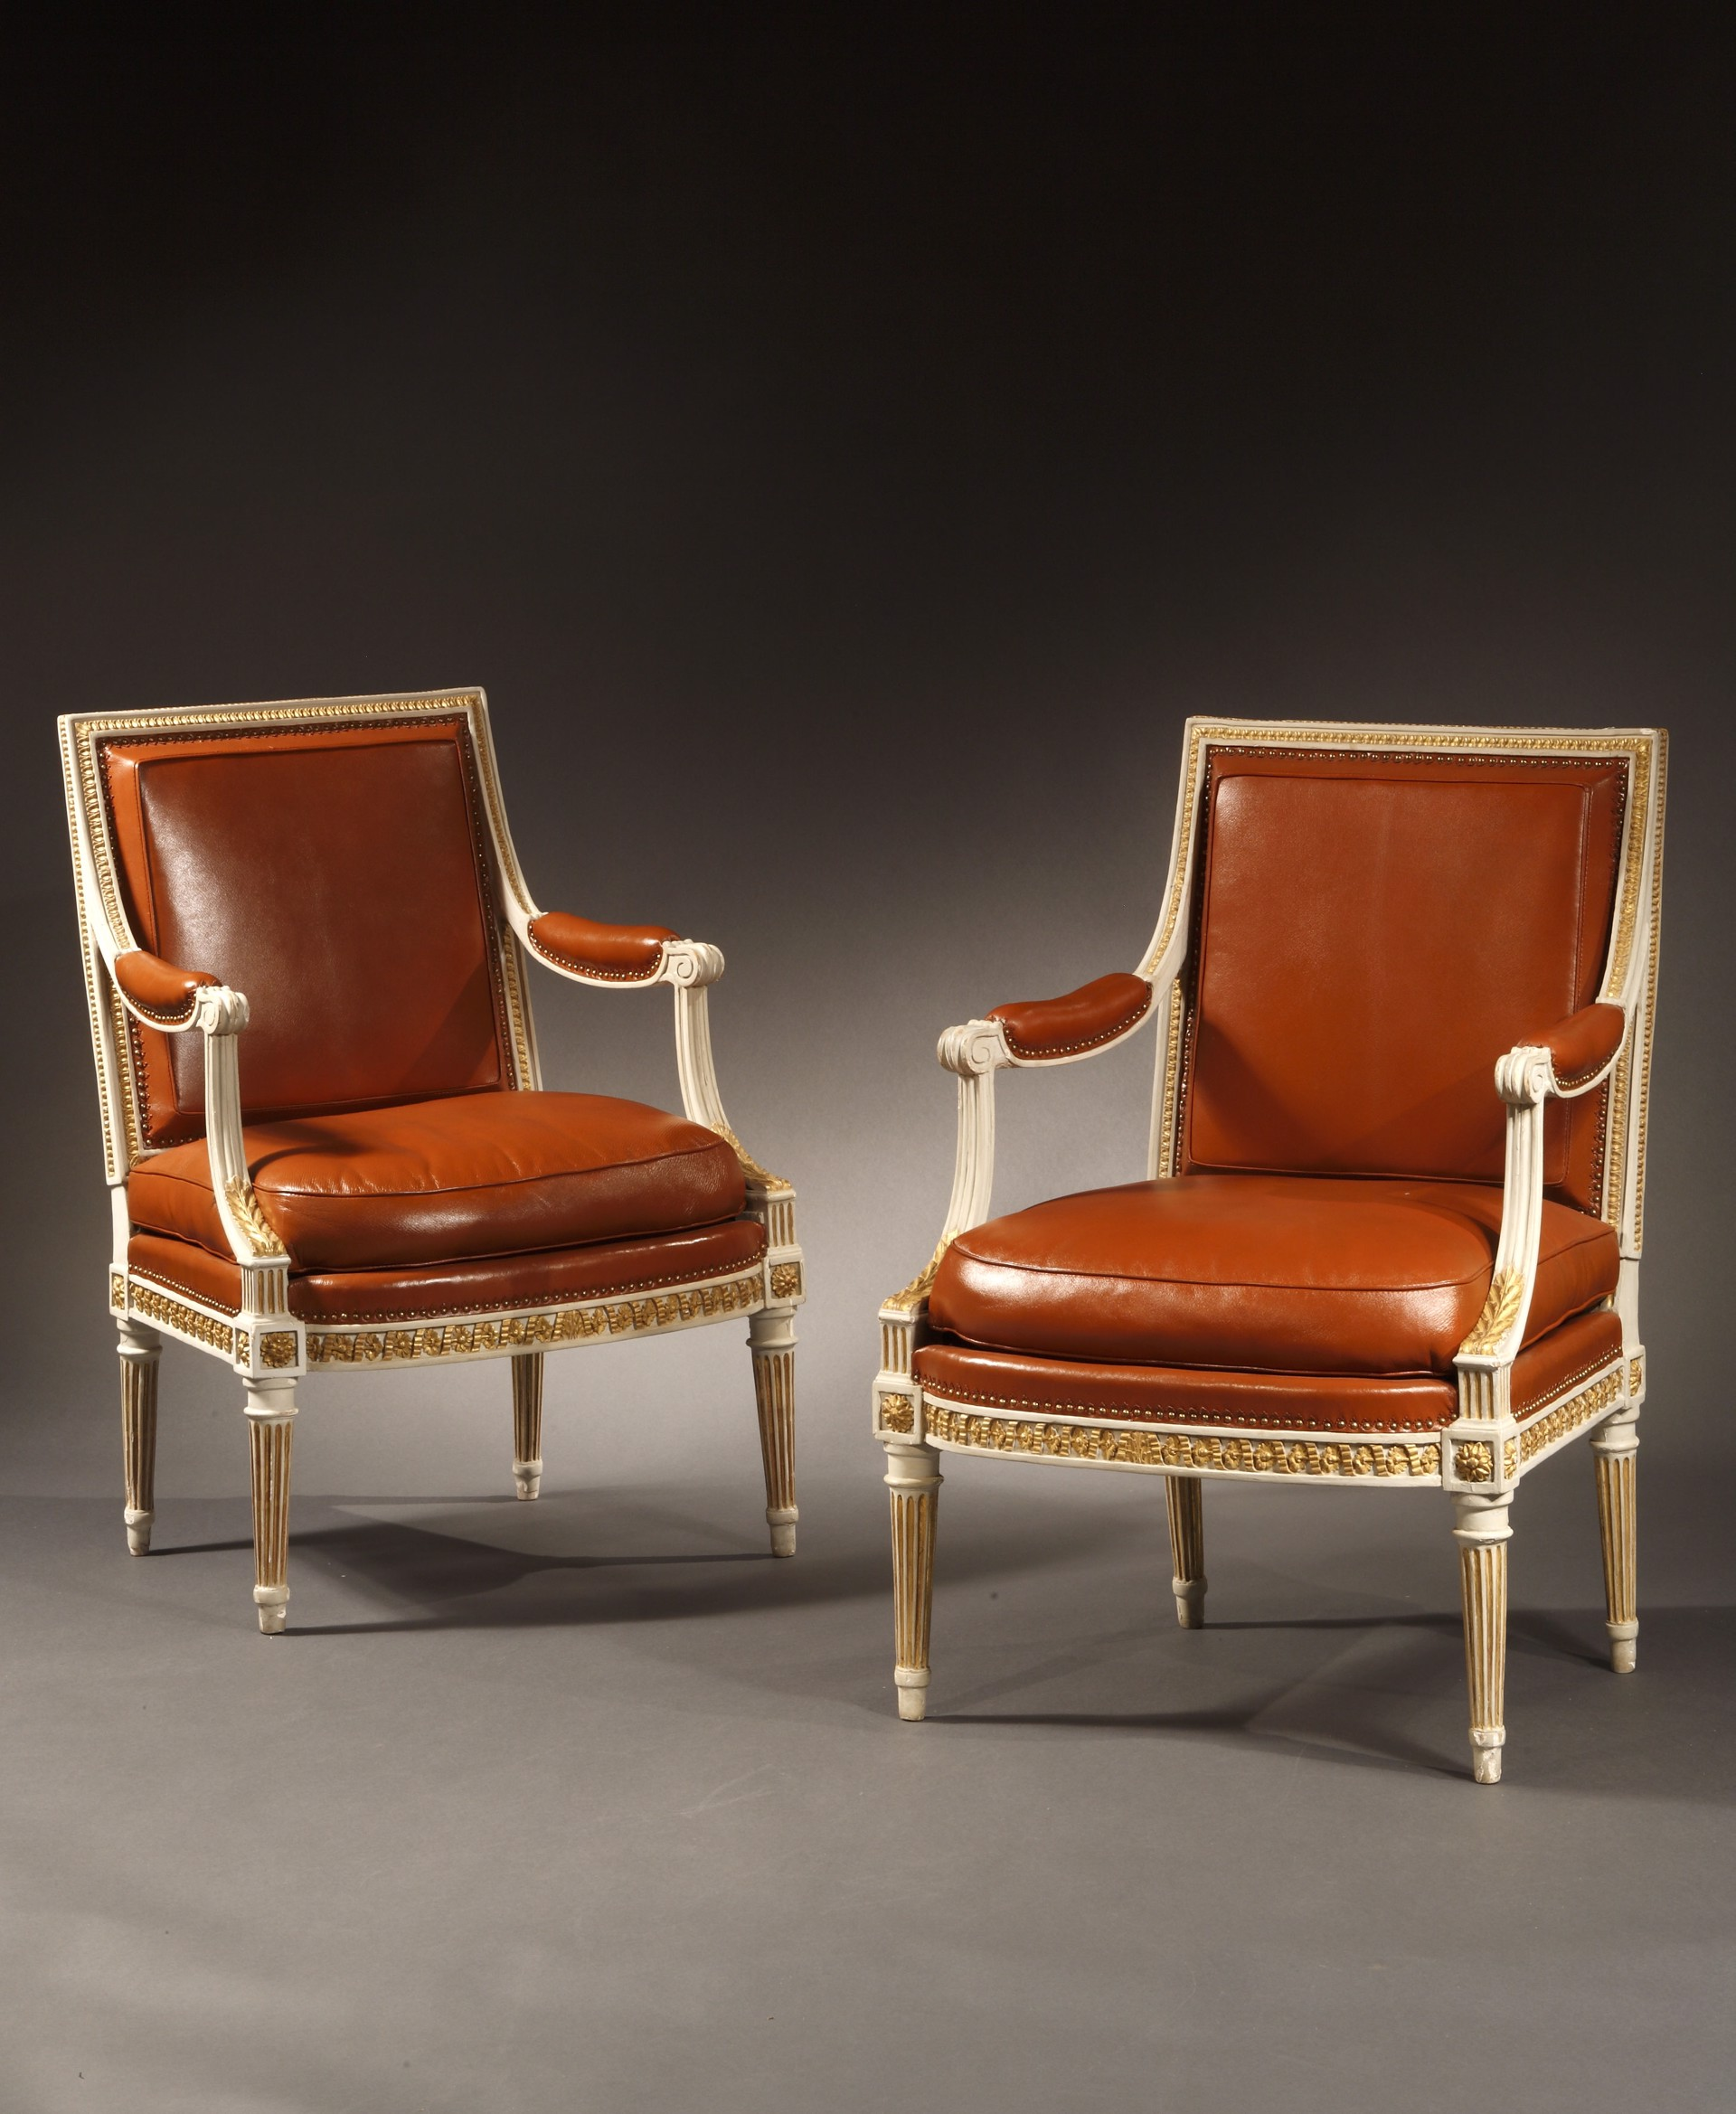 Pair Of Louis Xvi Painted And Parcel Gilt Fauteuils By H Jacob By Henri Jacob The Chinese Porcelain Company